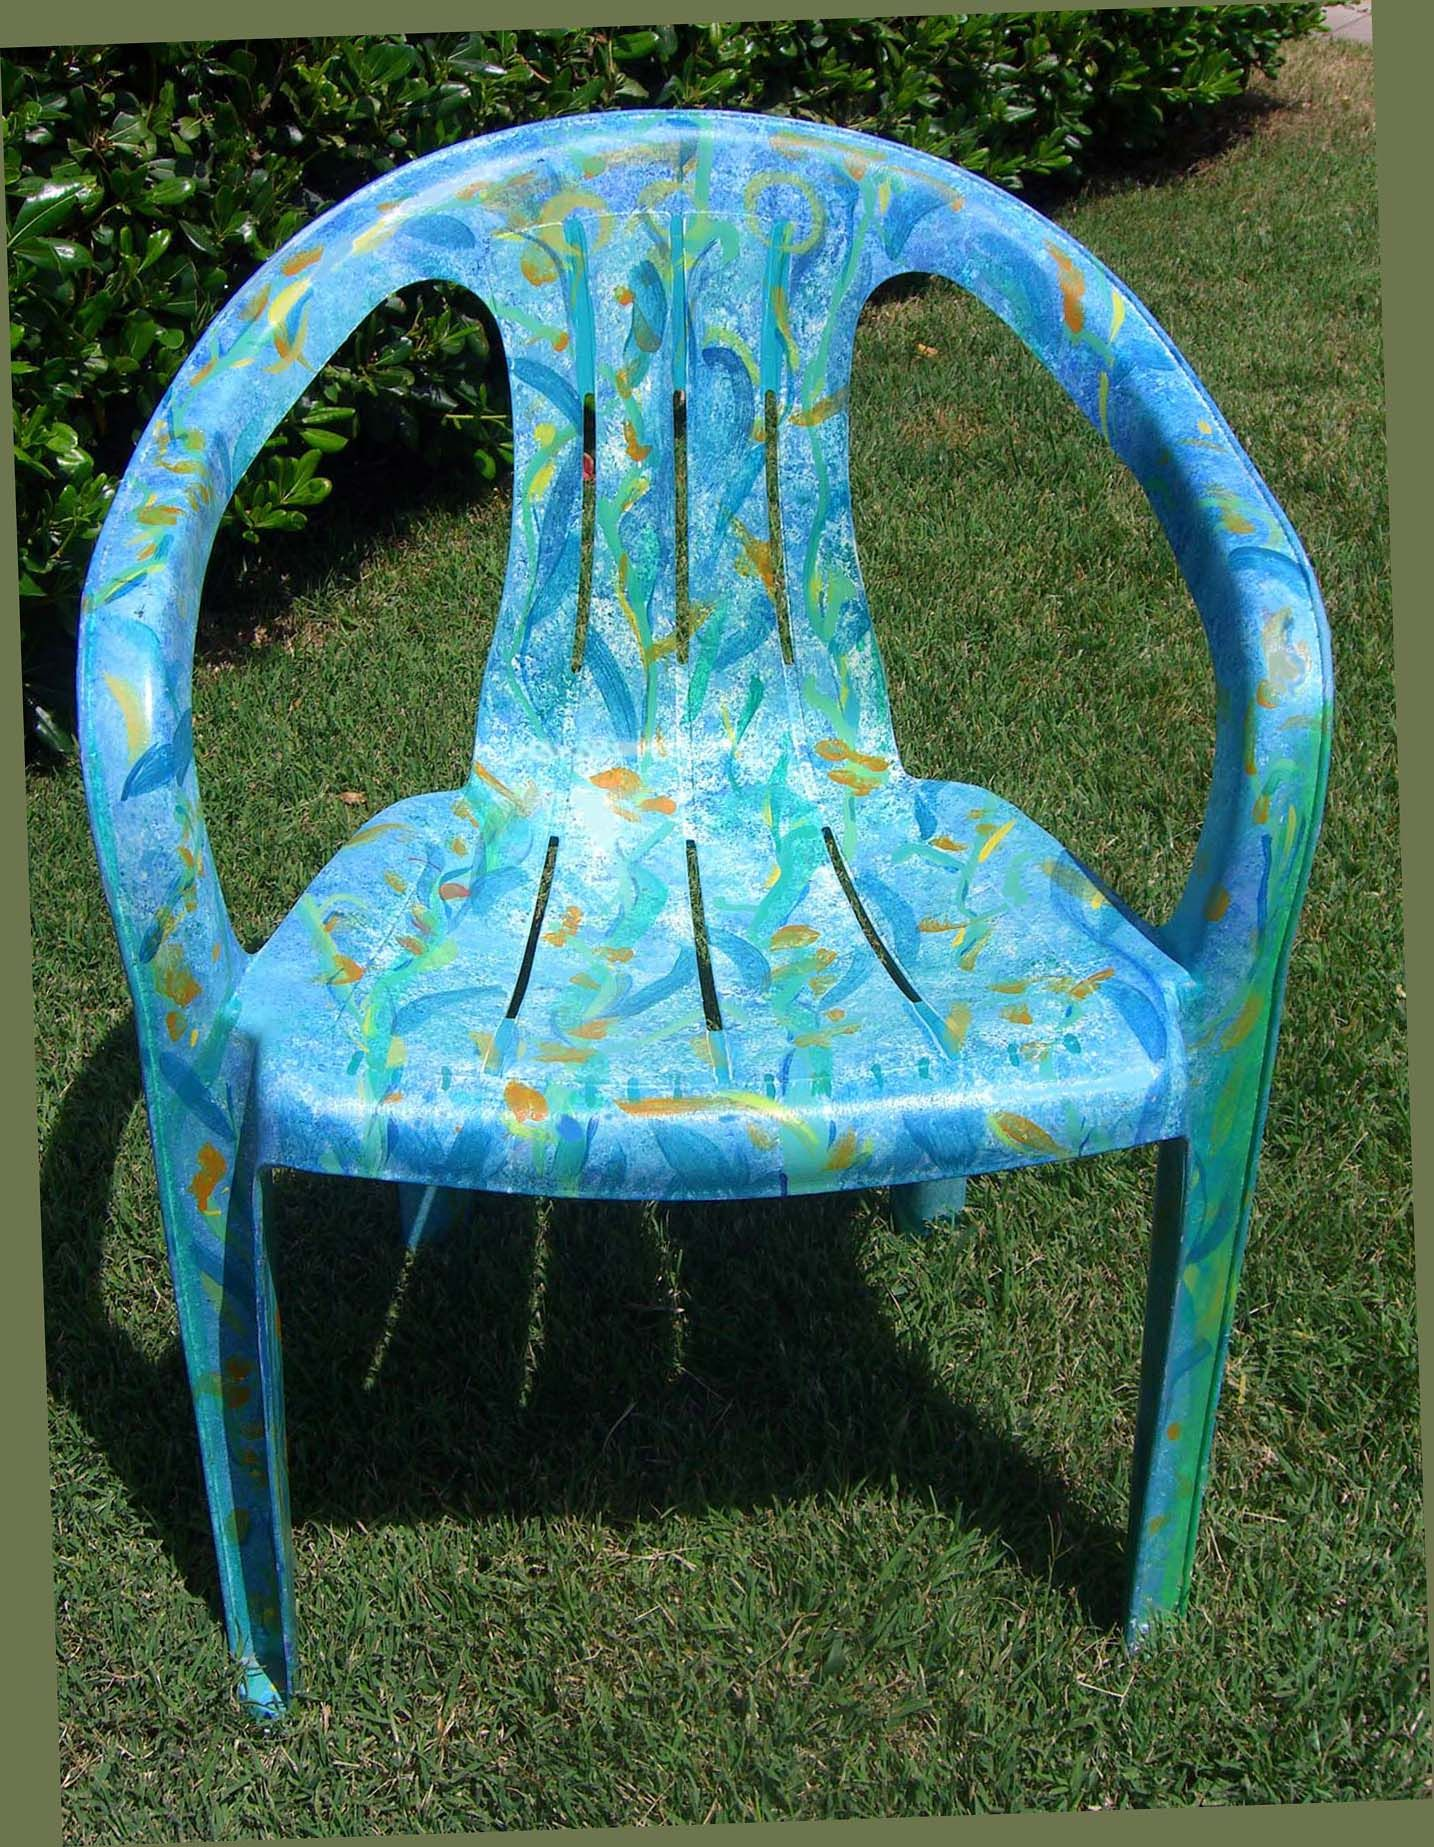 How To Paint Plastic Chairs Rocking Glider Chair For Nursery Canada Painted Resin At Bravo School Of Art San Diego